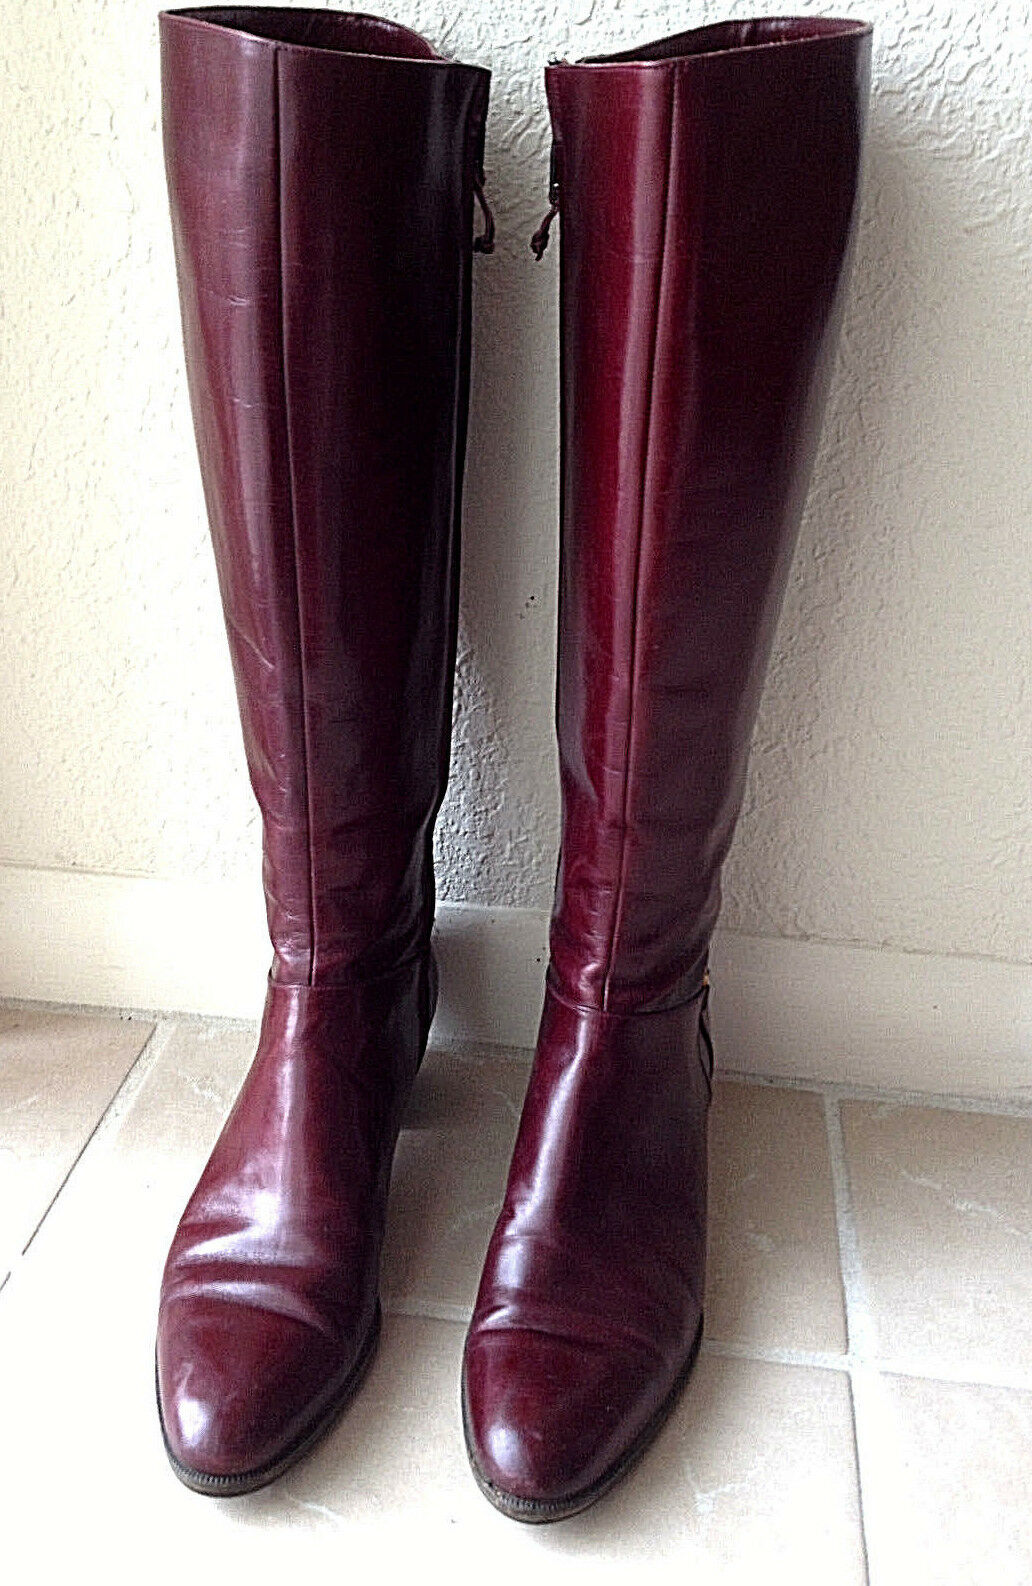 NEAR PERFECT FERRAGAMO BURGUNDY KNEE-HIGH BOOTS - BOX ( 400.00) - 7 AA VINTAGE